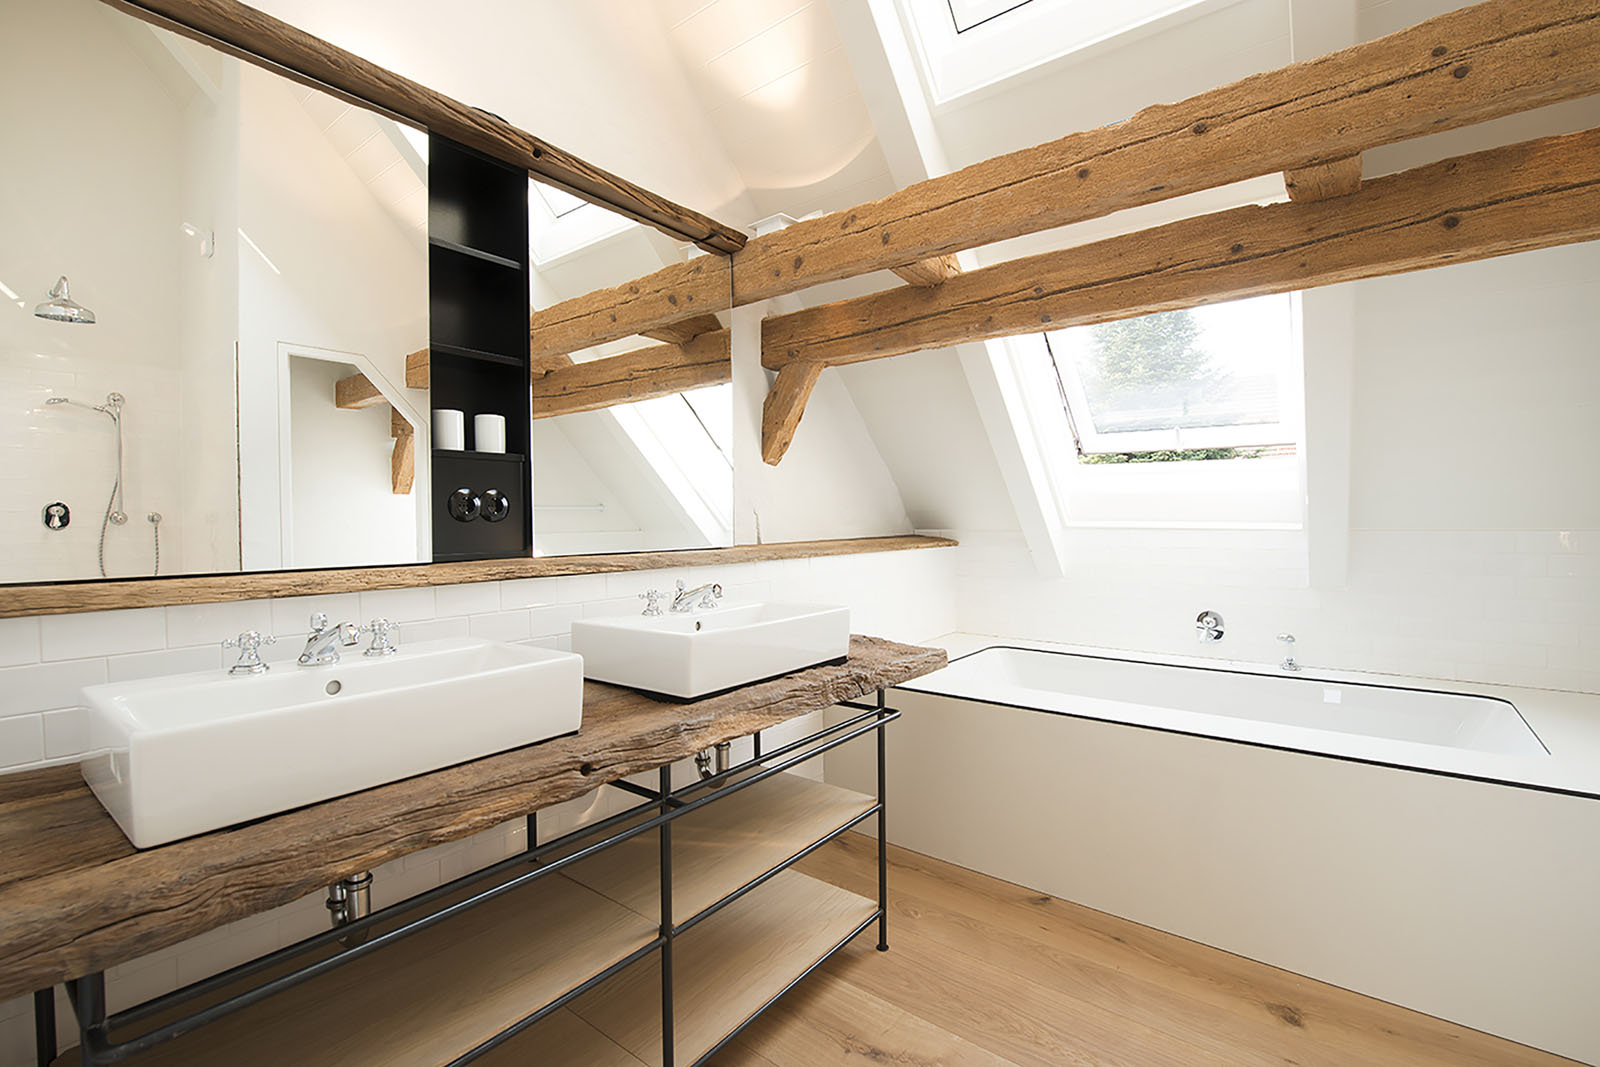 Bathroom with Natural Wood Materials